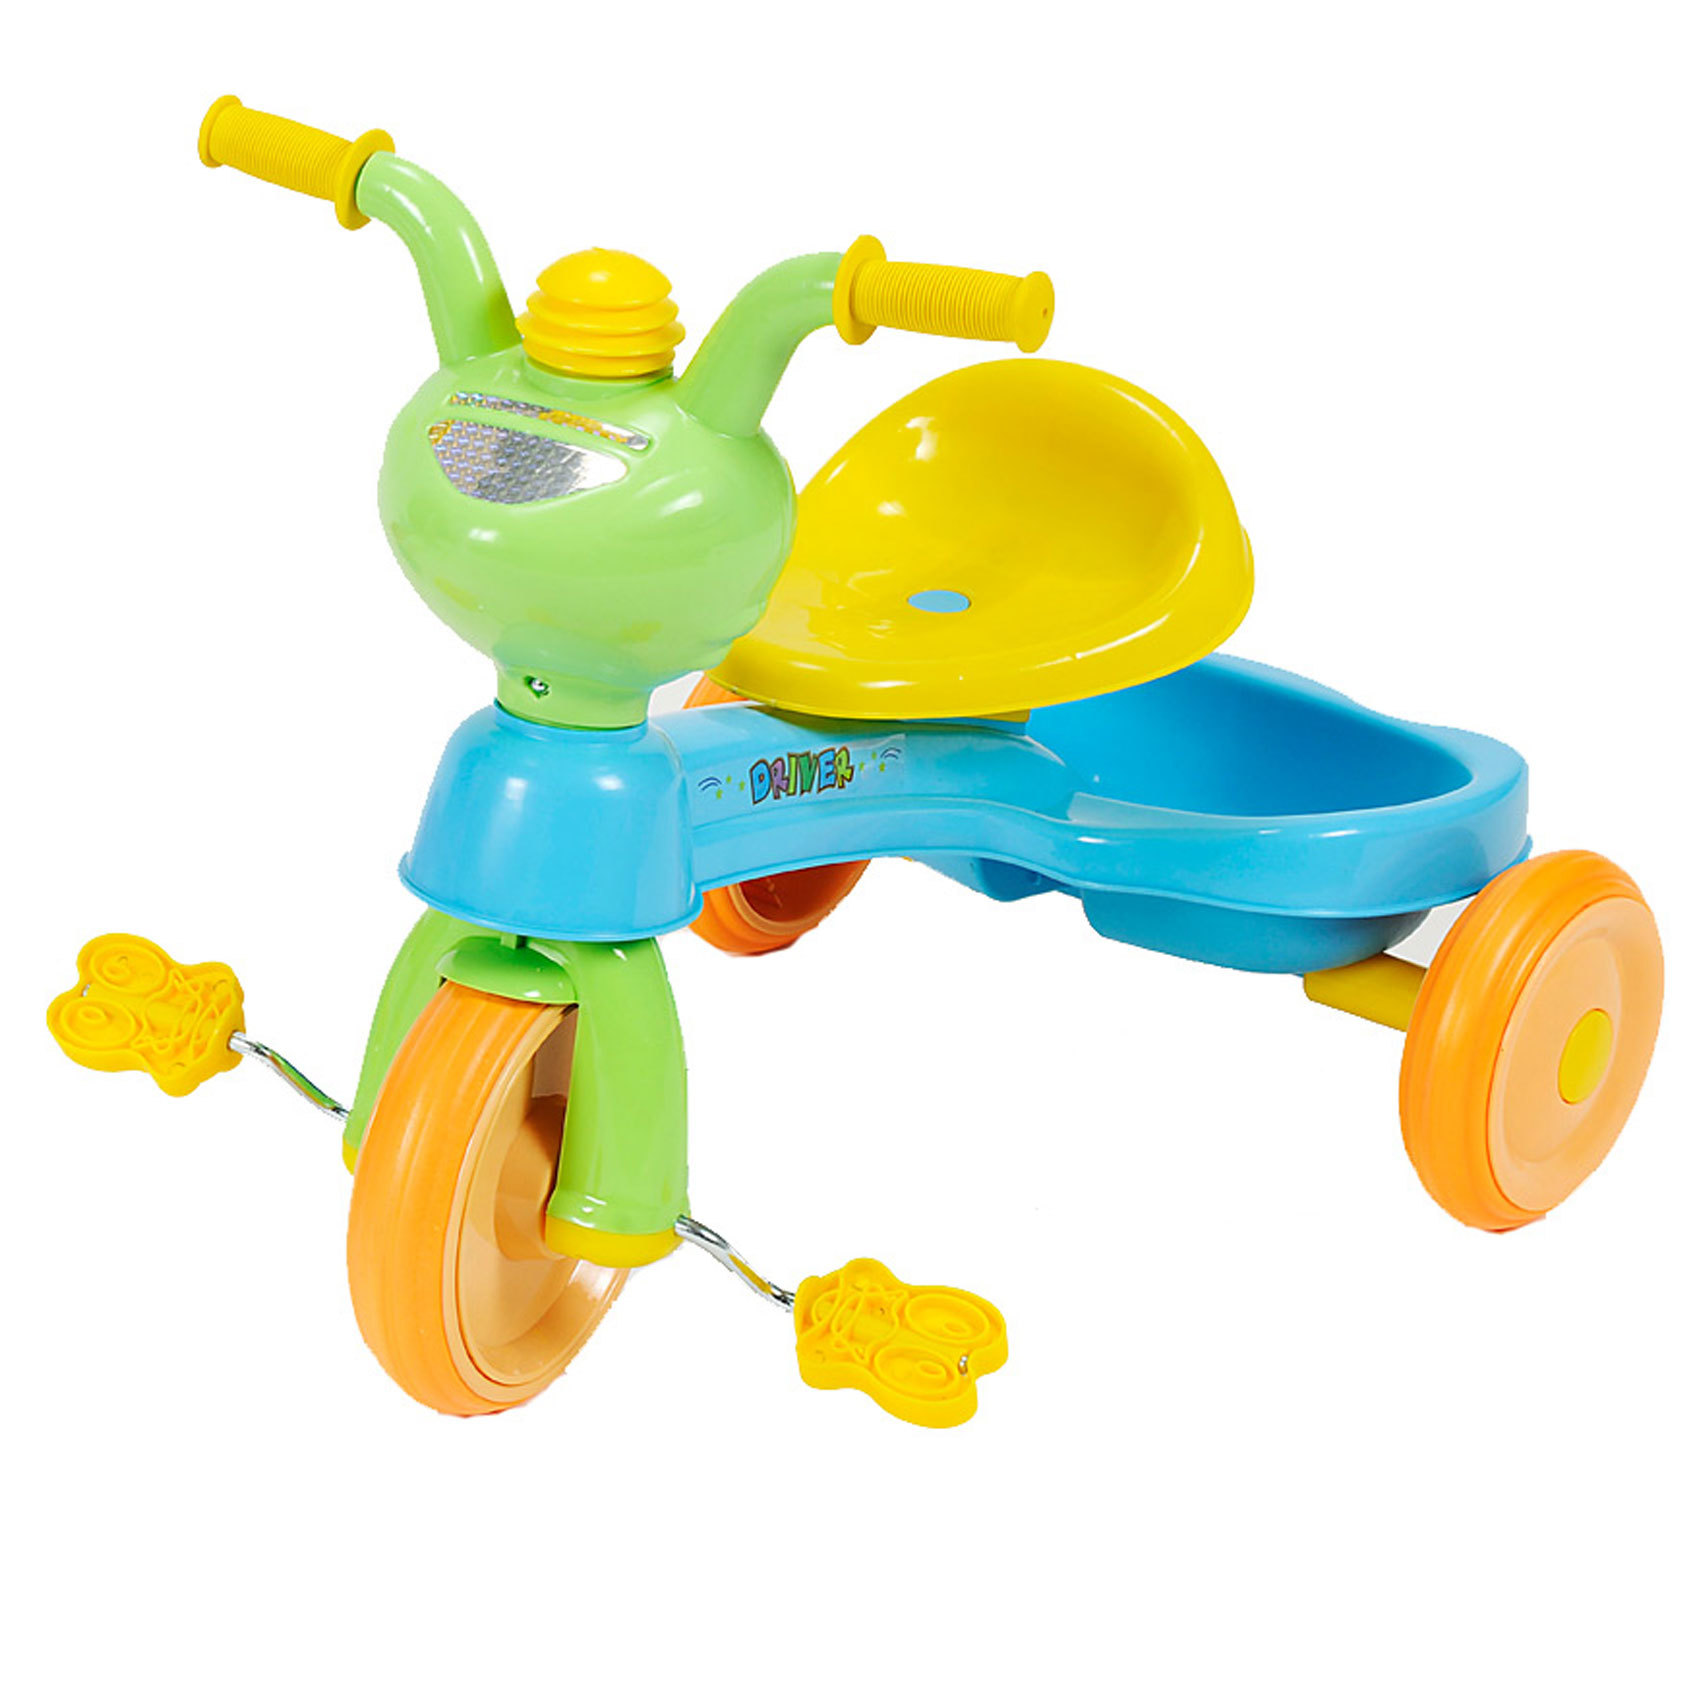 CHAMDOL TRICYCLE PINK & BLUE